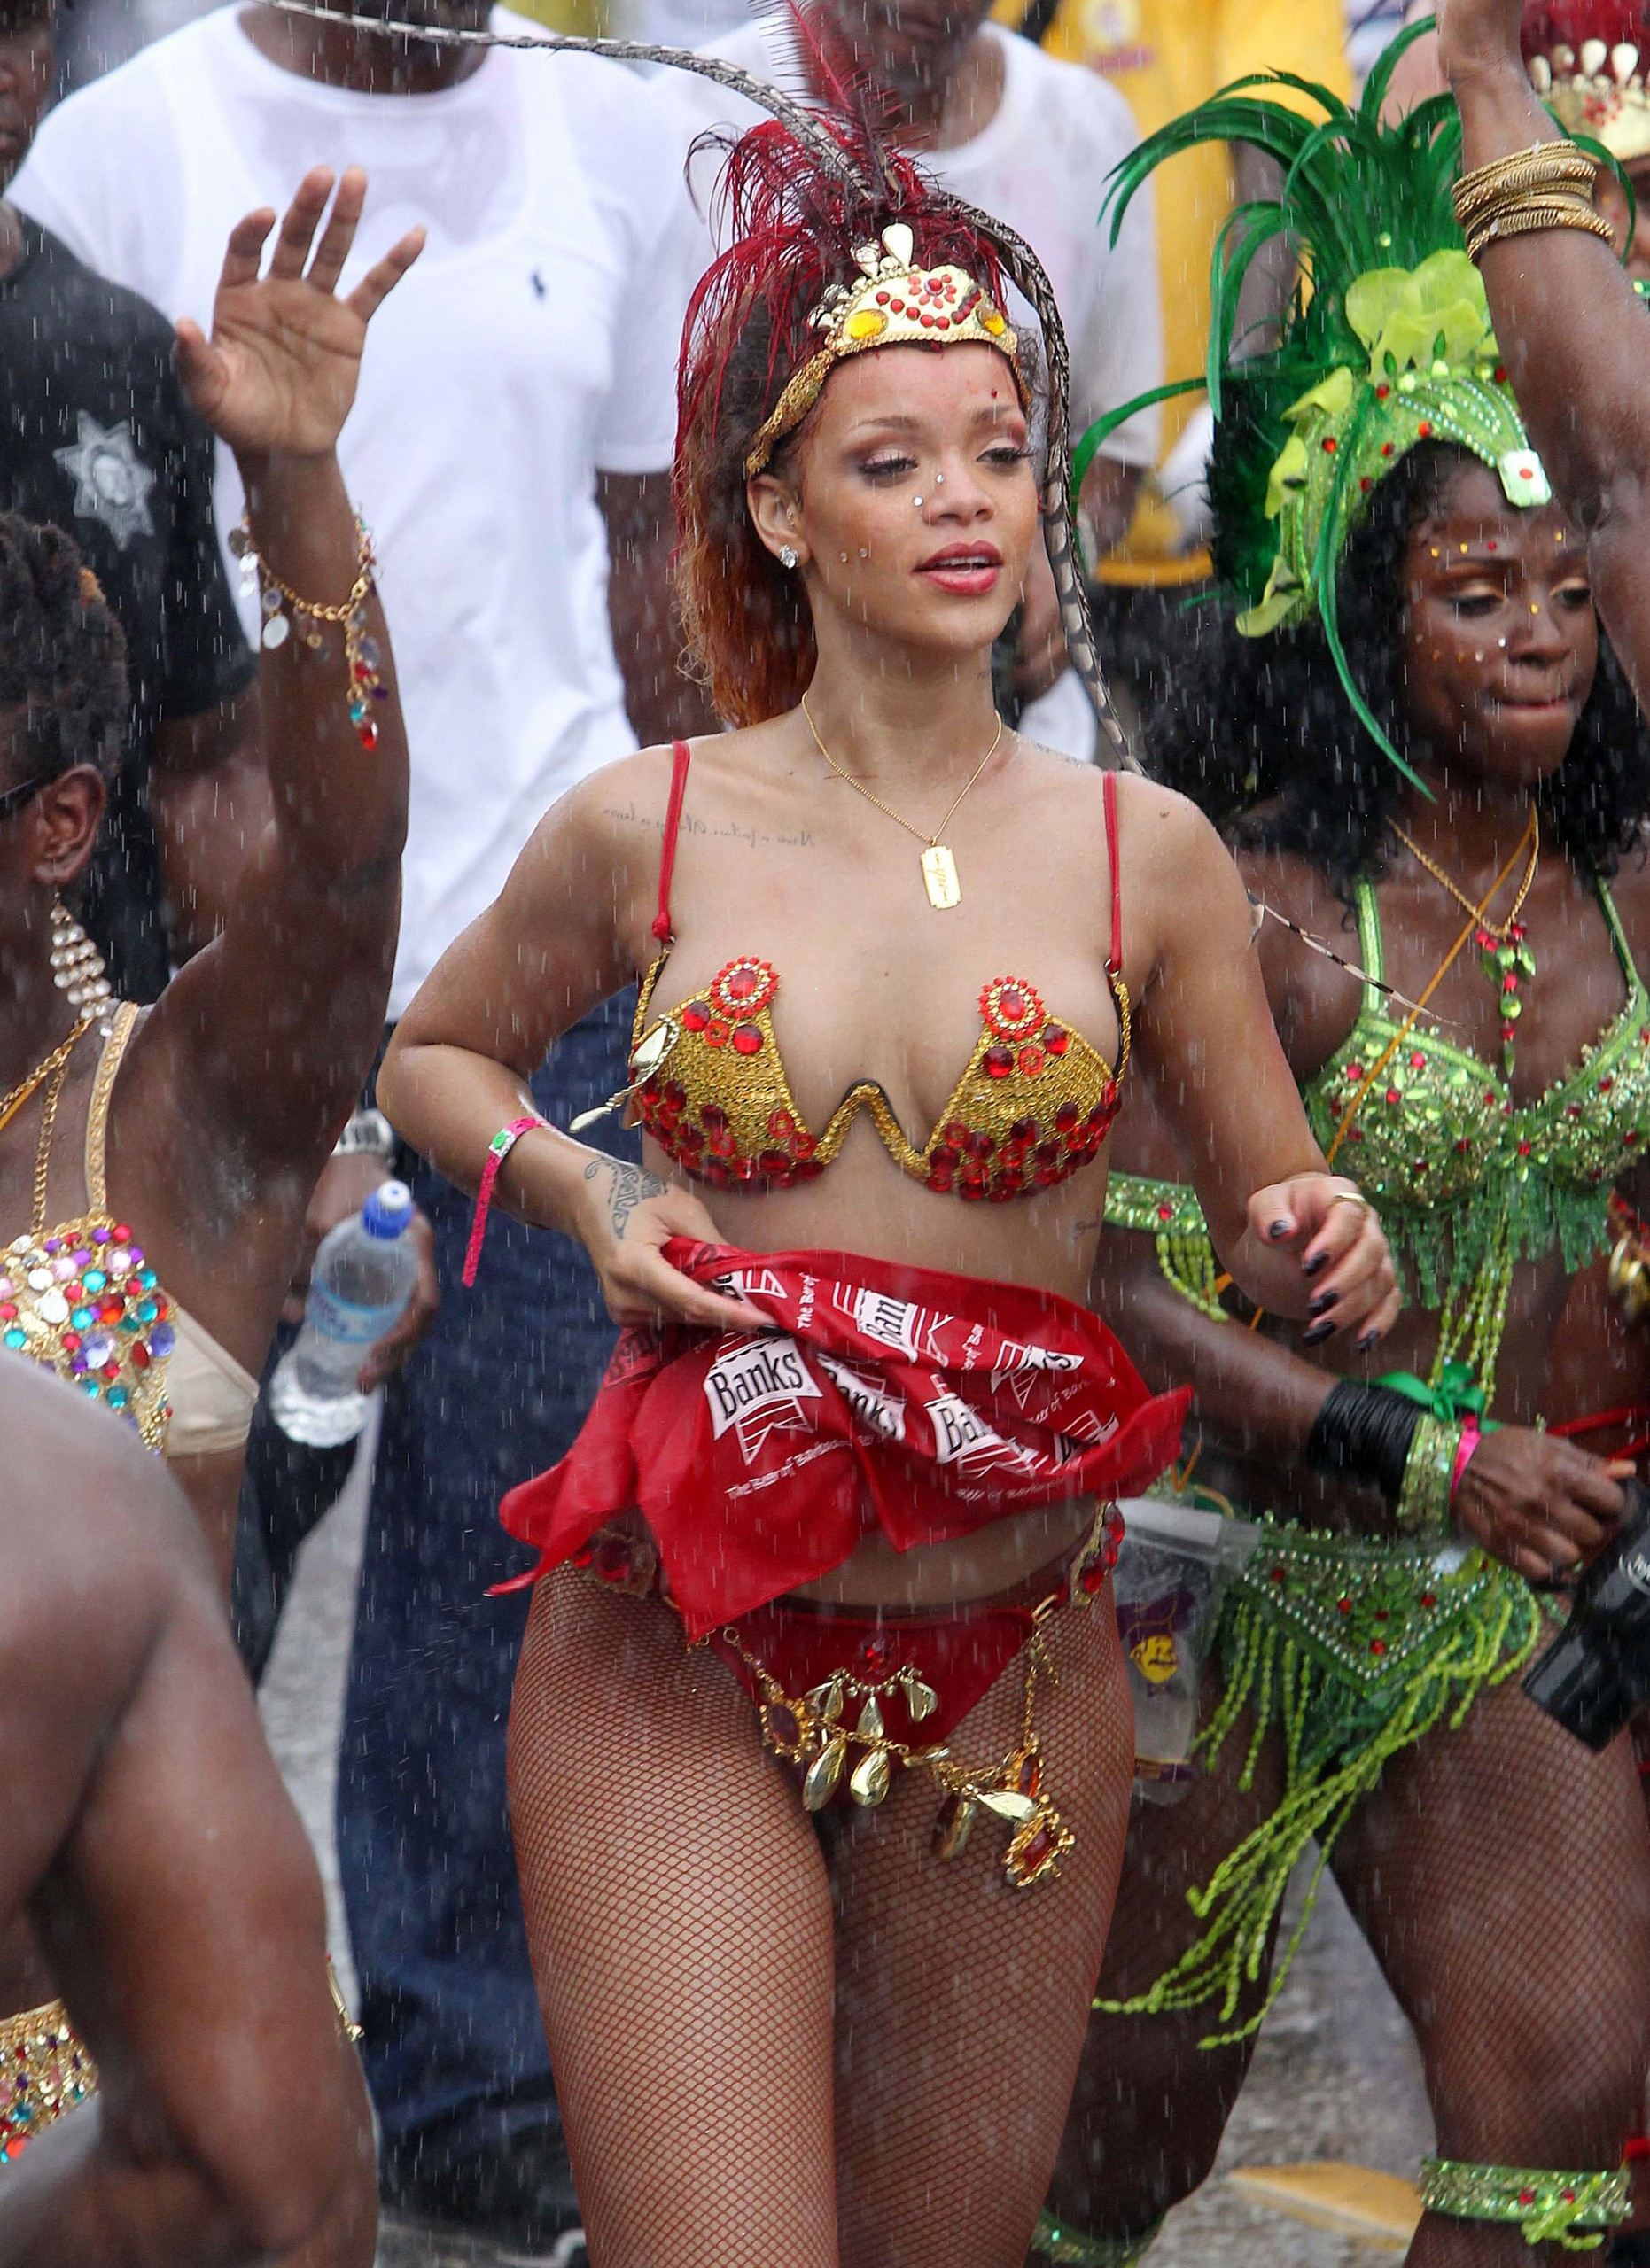 Kadoomant 日 Parade In Barbados 1 08 2011